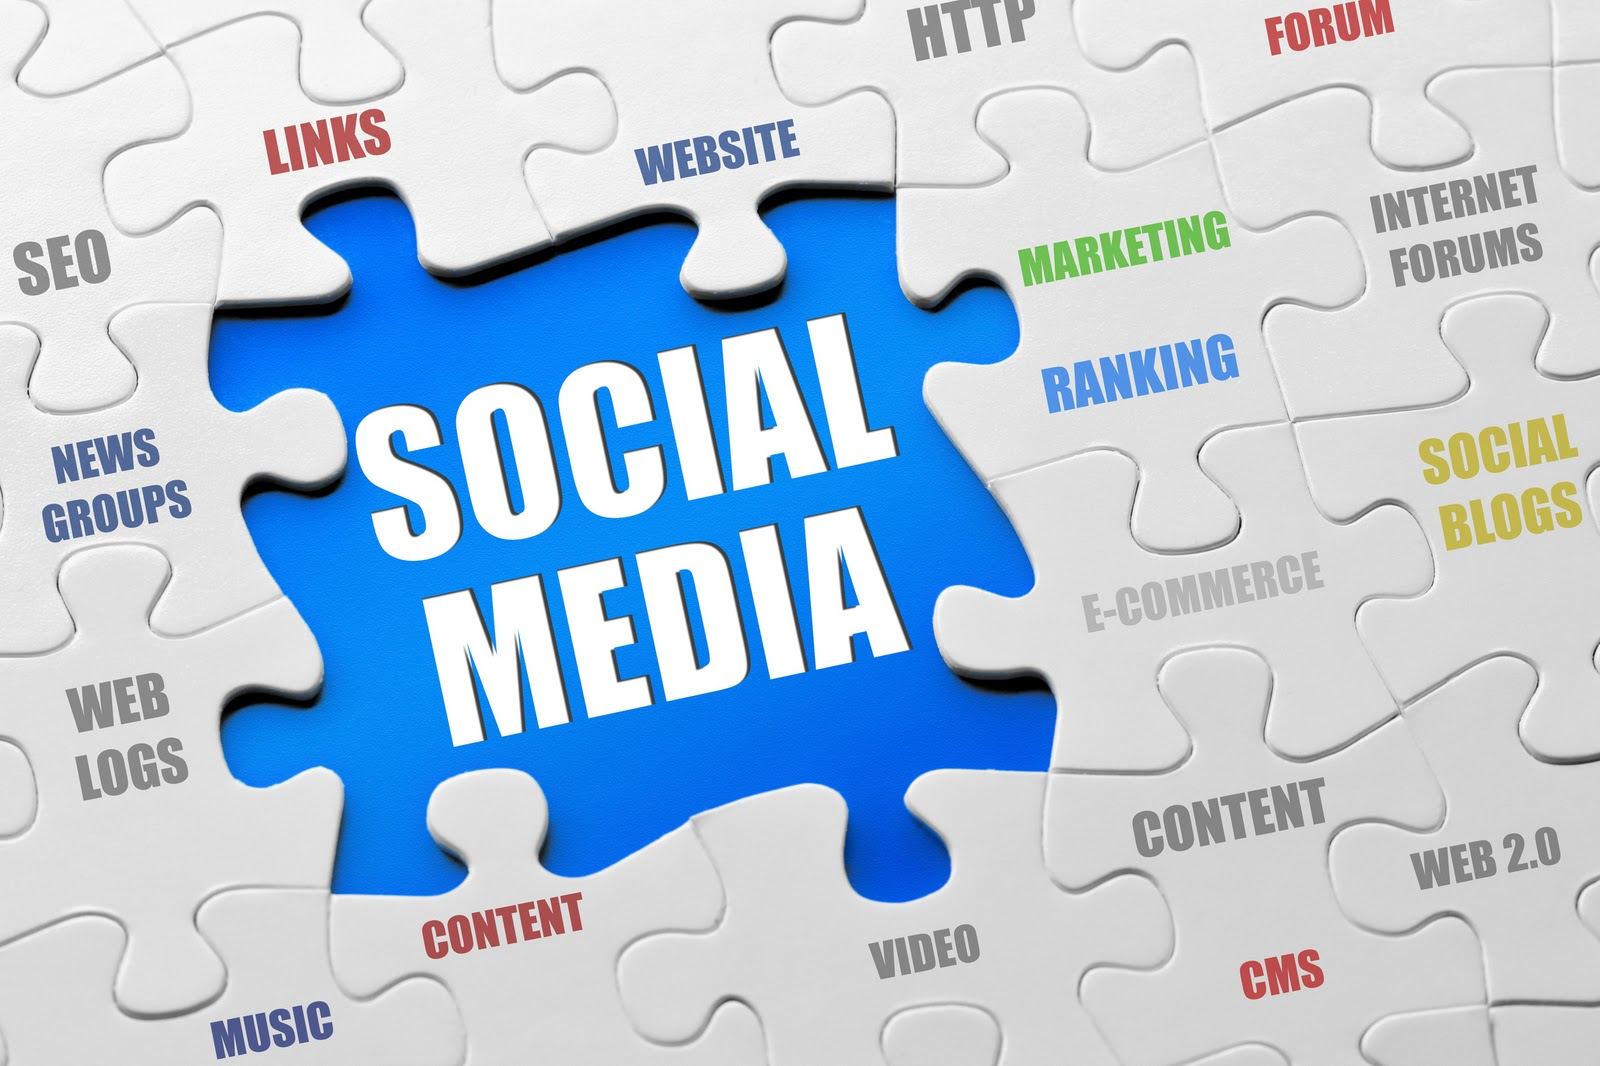 INBOUND MARKETING SOCIAL MEDIA